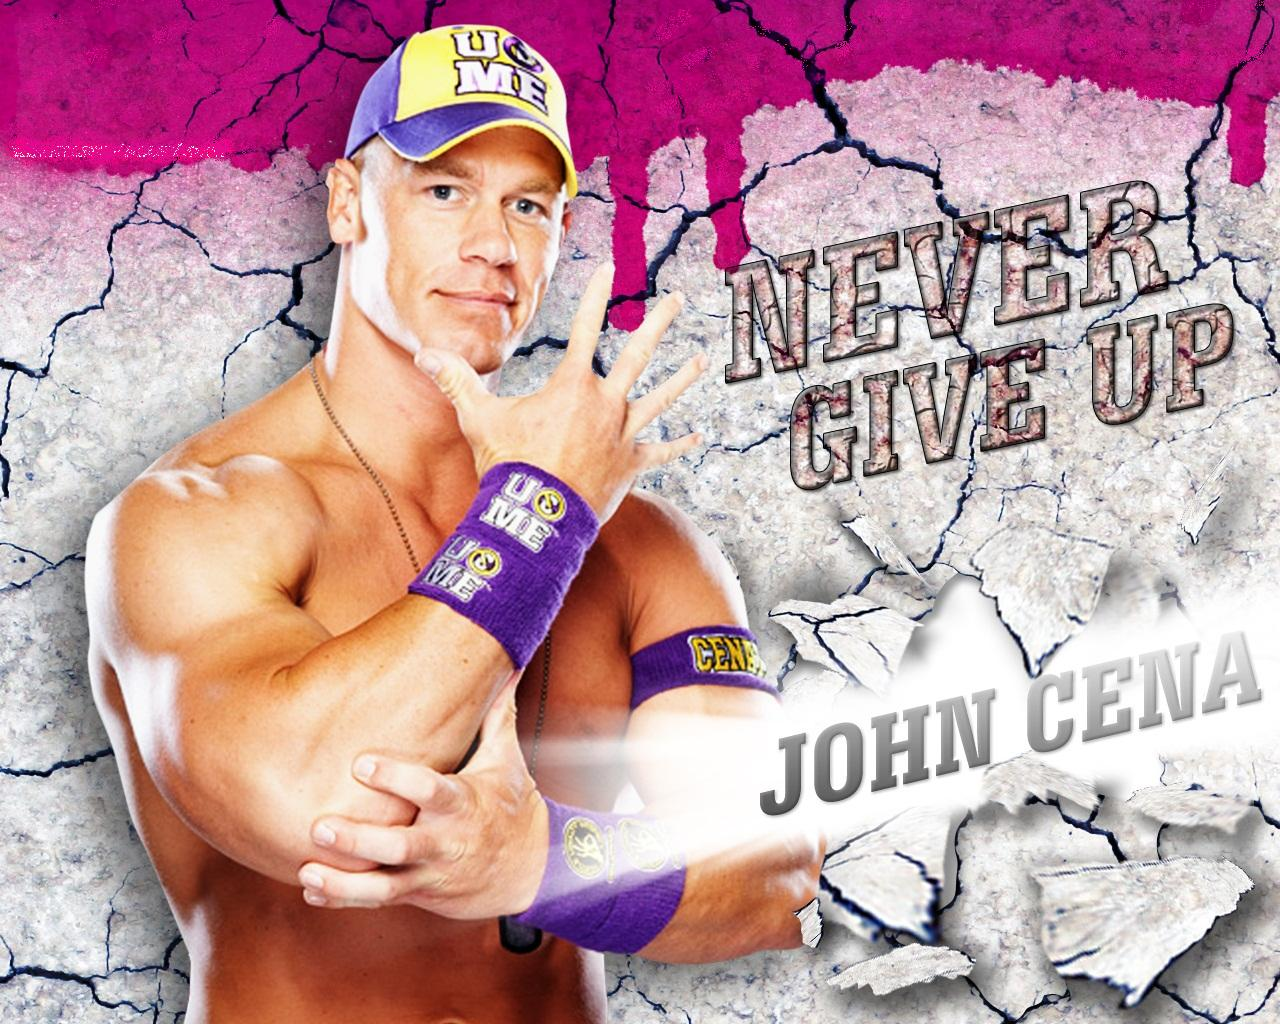 John Cena New HD Wallpapers Only 2013 All About HD 1280x1024